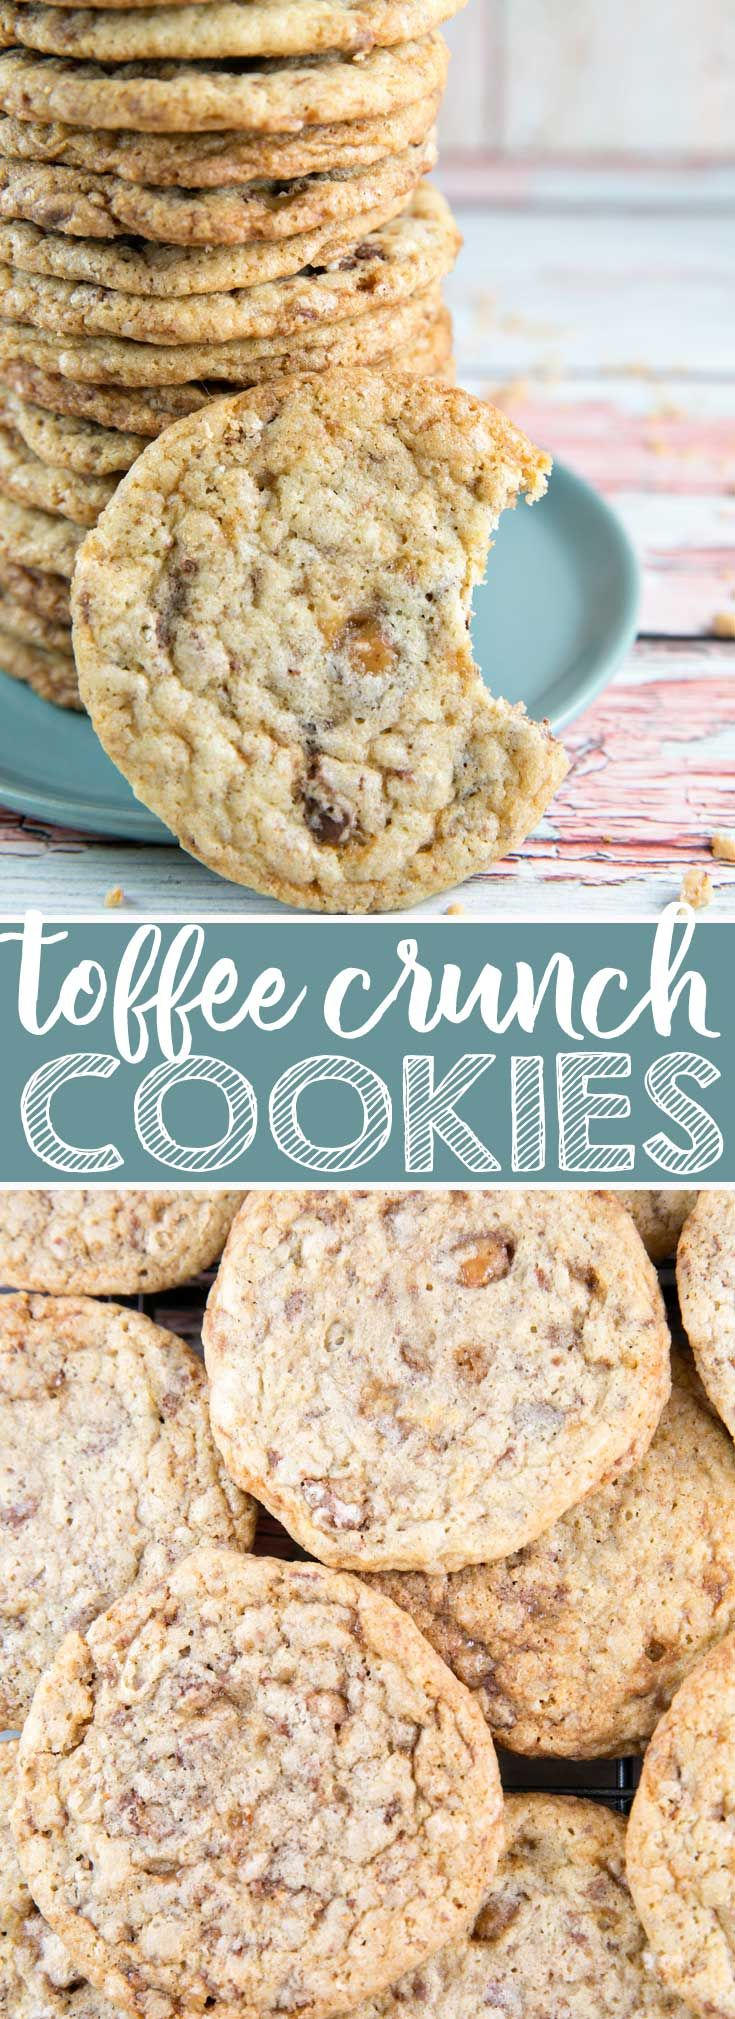 Toffee Crunch Cookies: A little sweet, a little salty, a little crispy, a little chewy -- these toffee crunch cookies are all delicious! {Bunsen Burner Bakery} #cookies #toffee #heathbar #christmascookies via @bnsnbrnrbakery